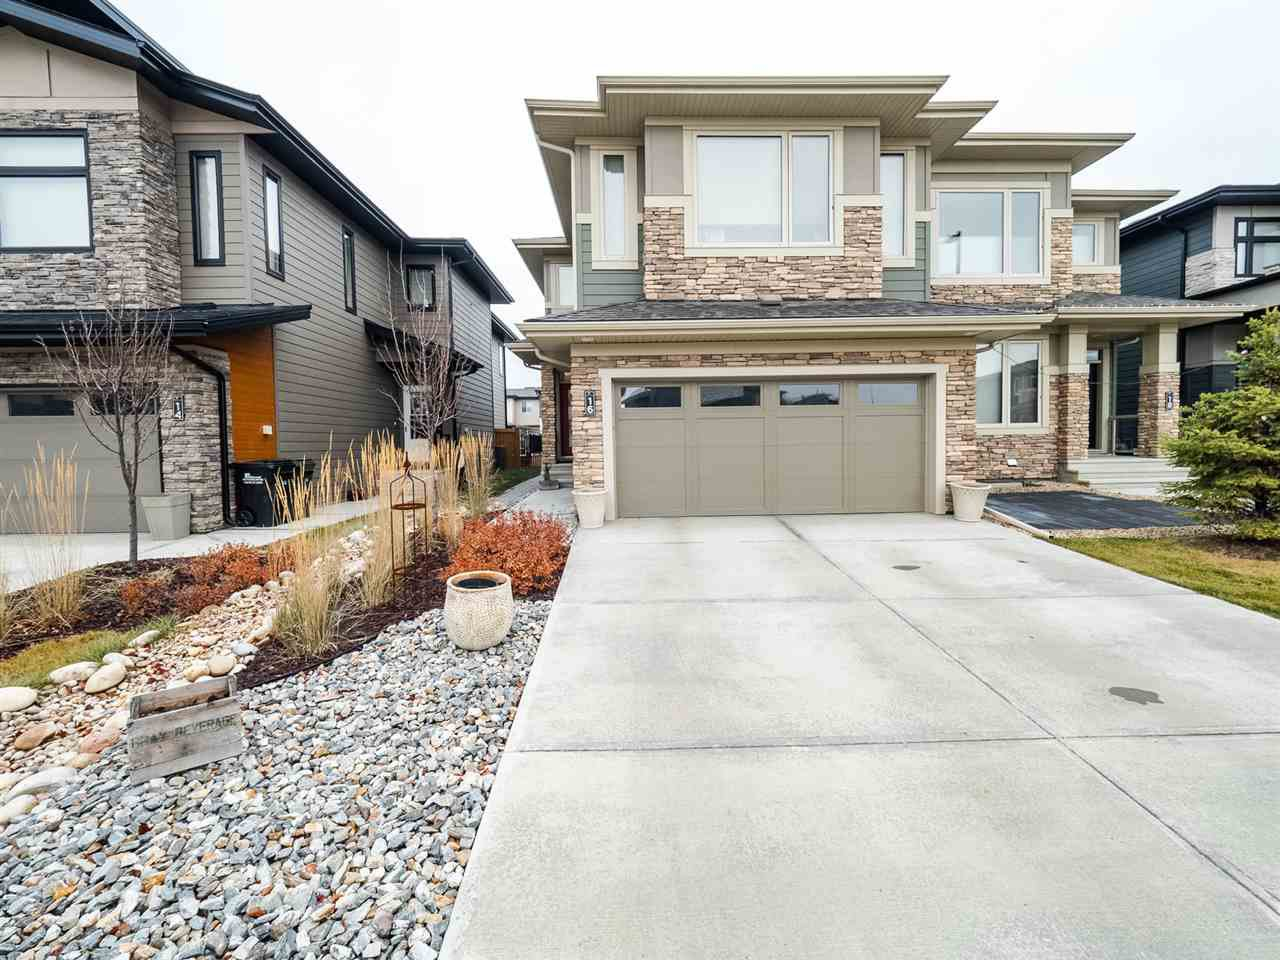 Main Photo: 16 FOSBURY Link: Sherwood Park Attached Home for sale : MLS®# E4220525